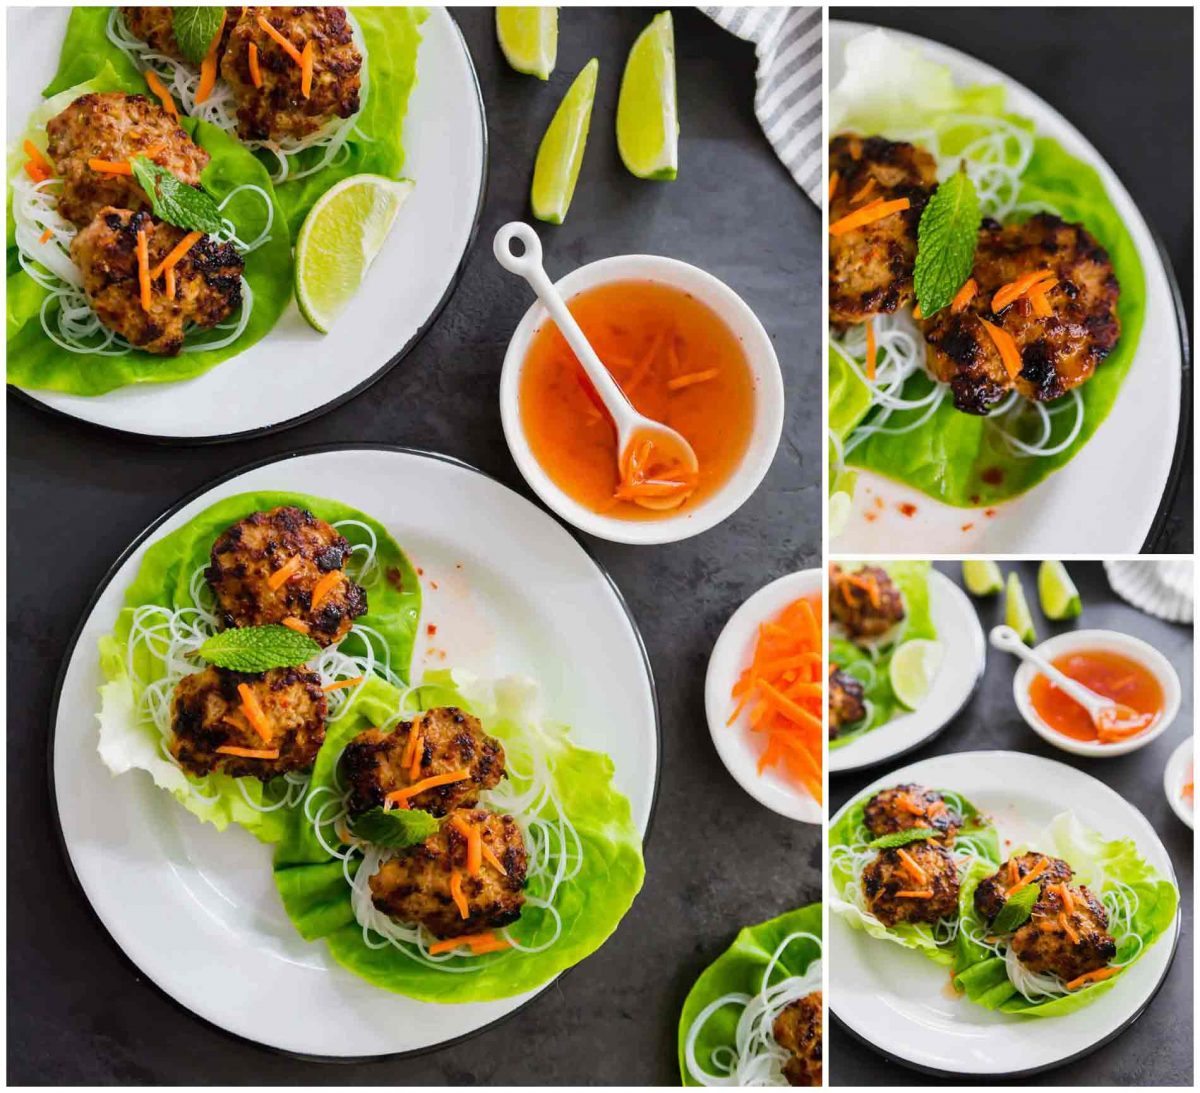 These lemongrass pork meatballs served in crisp lettuce cups will be a delicious addition to your dinner menu or even served as an appetizer! #lettucewraps #lemongrass #porkmeatballs #meatballs #vietnamesefood